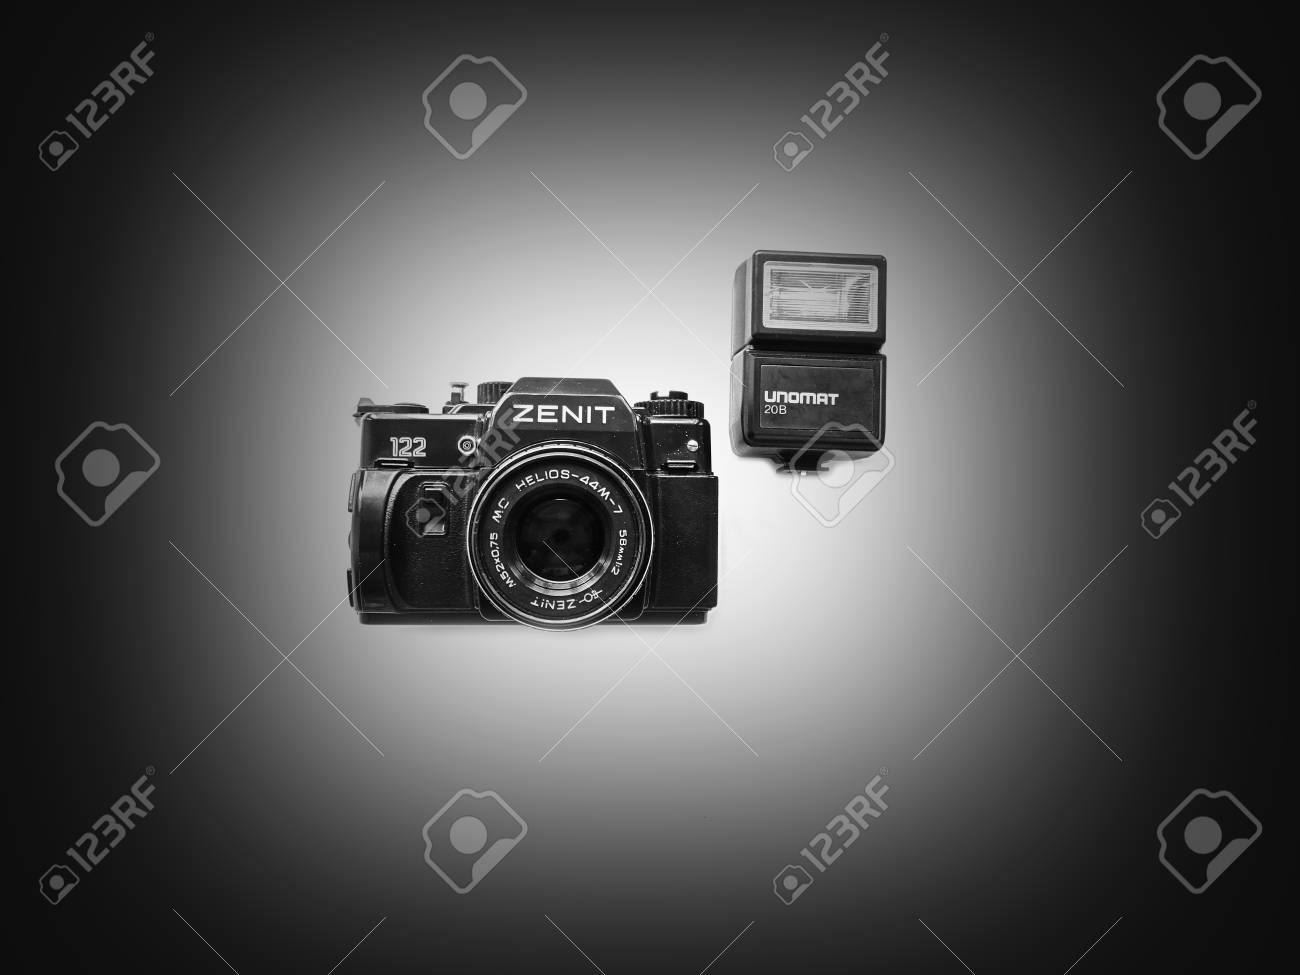 Old Camera Zenith Vintage Style Retro Background Wallpaper 1300x975